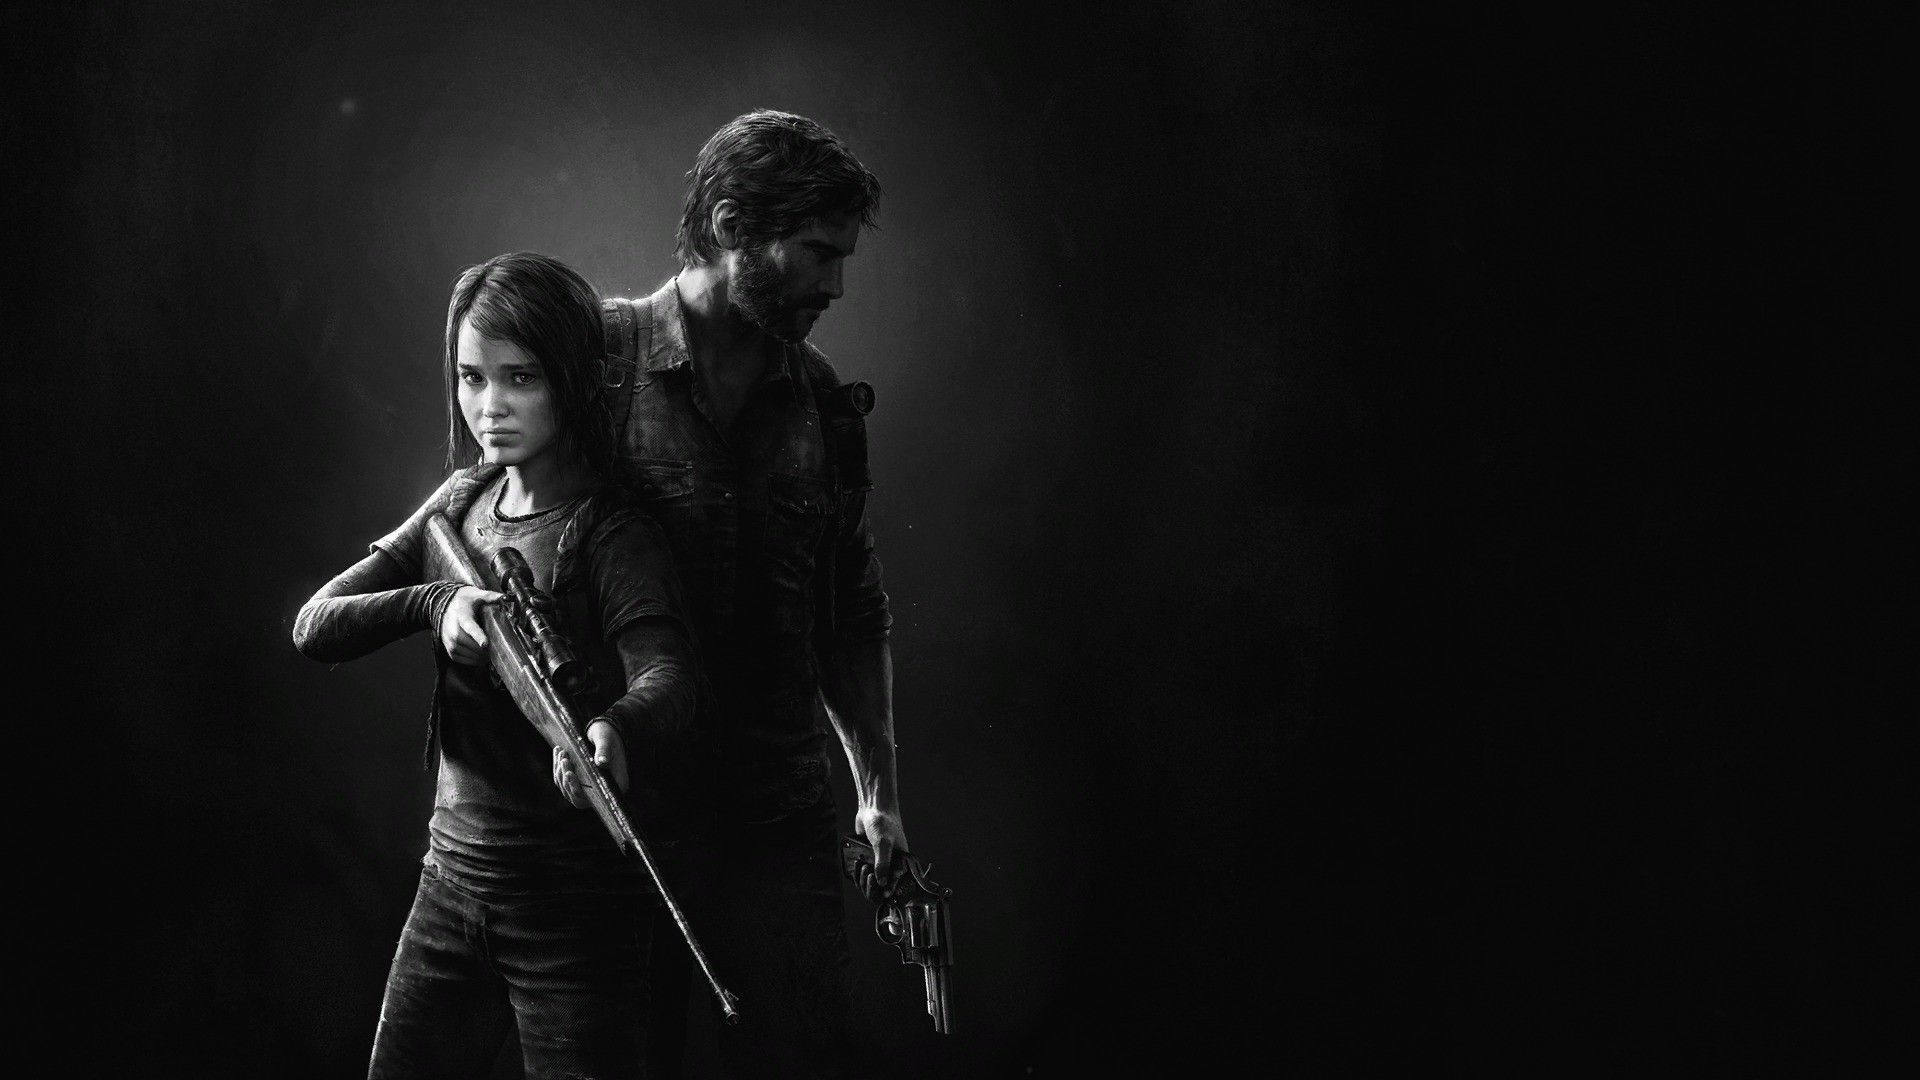 Iphone Sc Wallpaper The Last Of Us The Last Of Us Last Of